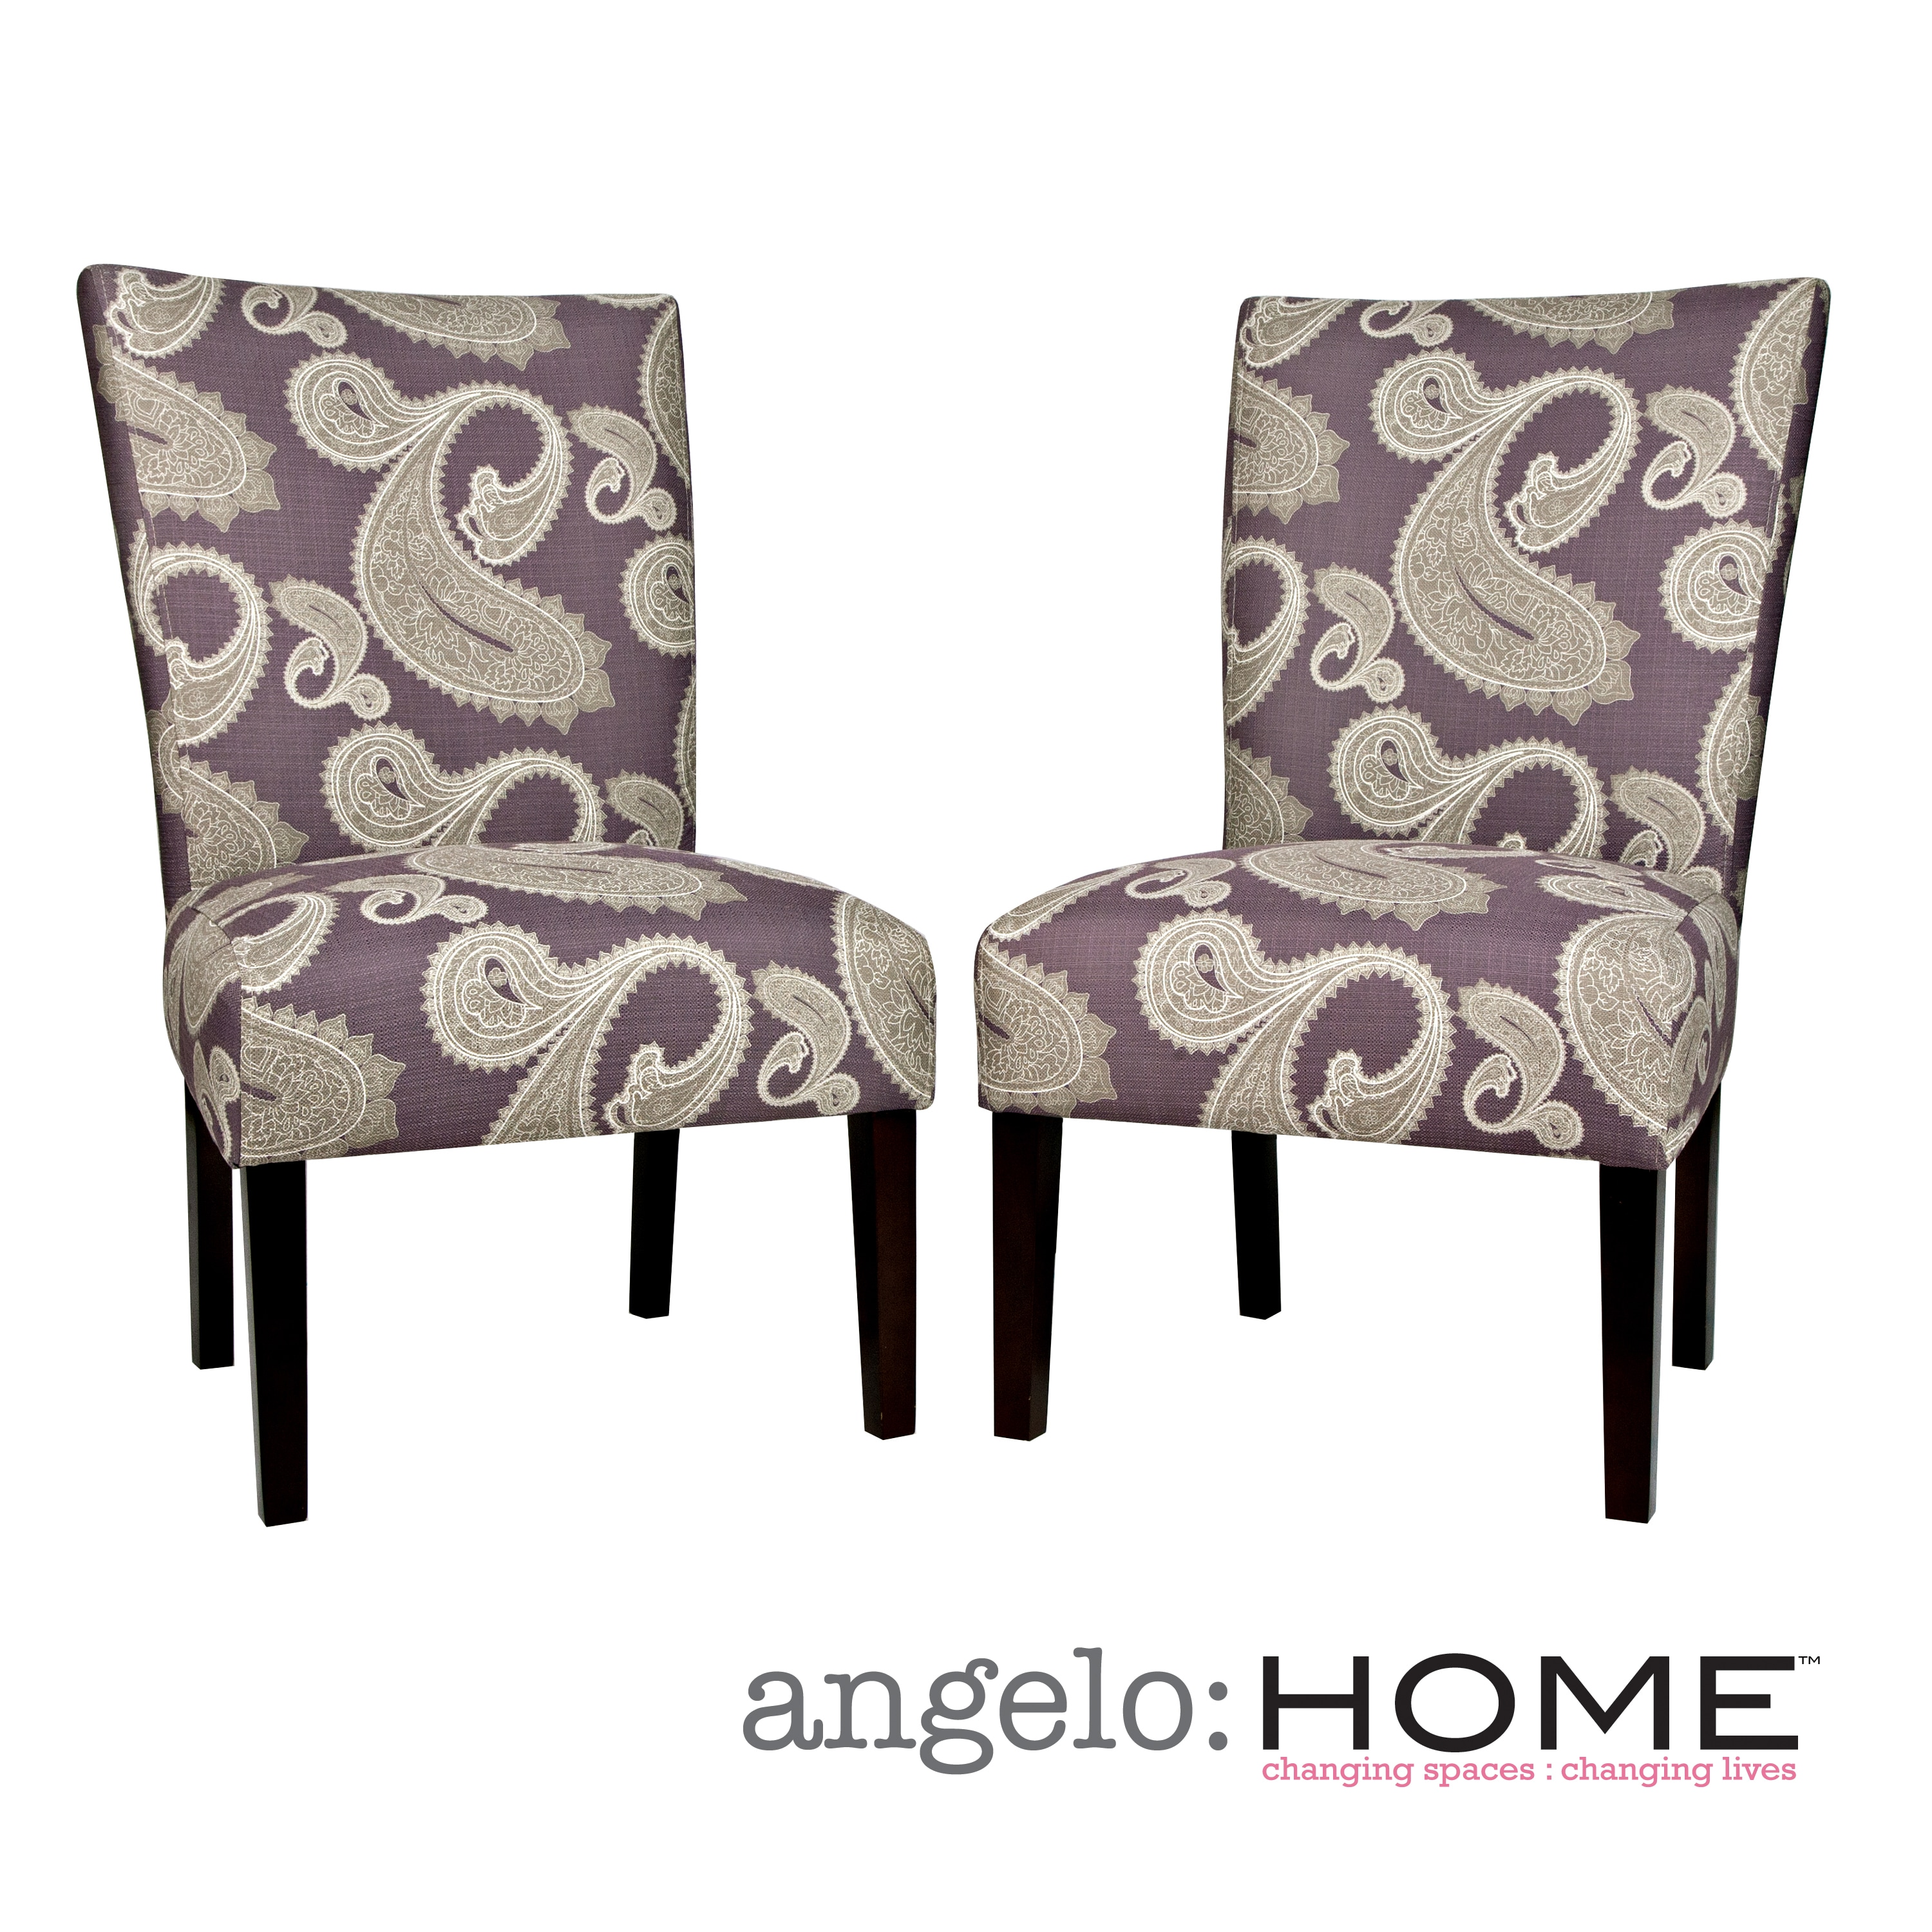 angelo:HOME Bradford Feathered Paisley Amethyst Purple Upholstered Armless Dining Chairs (Set of 2)